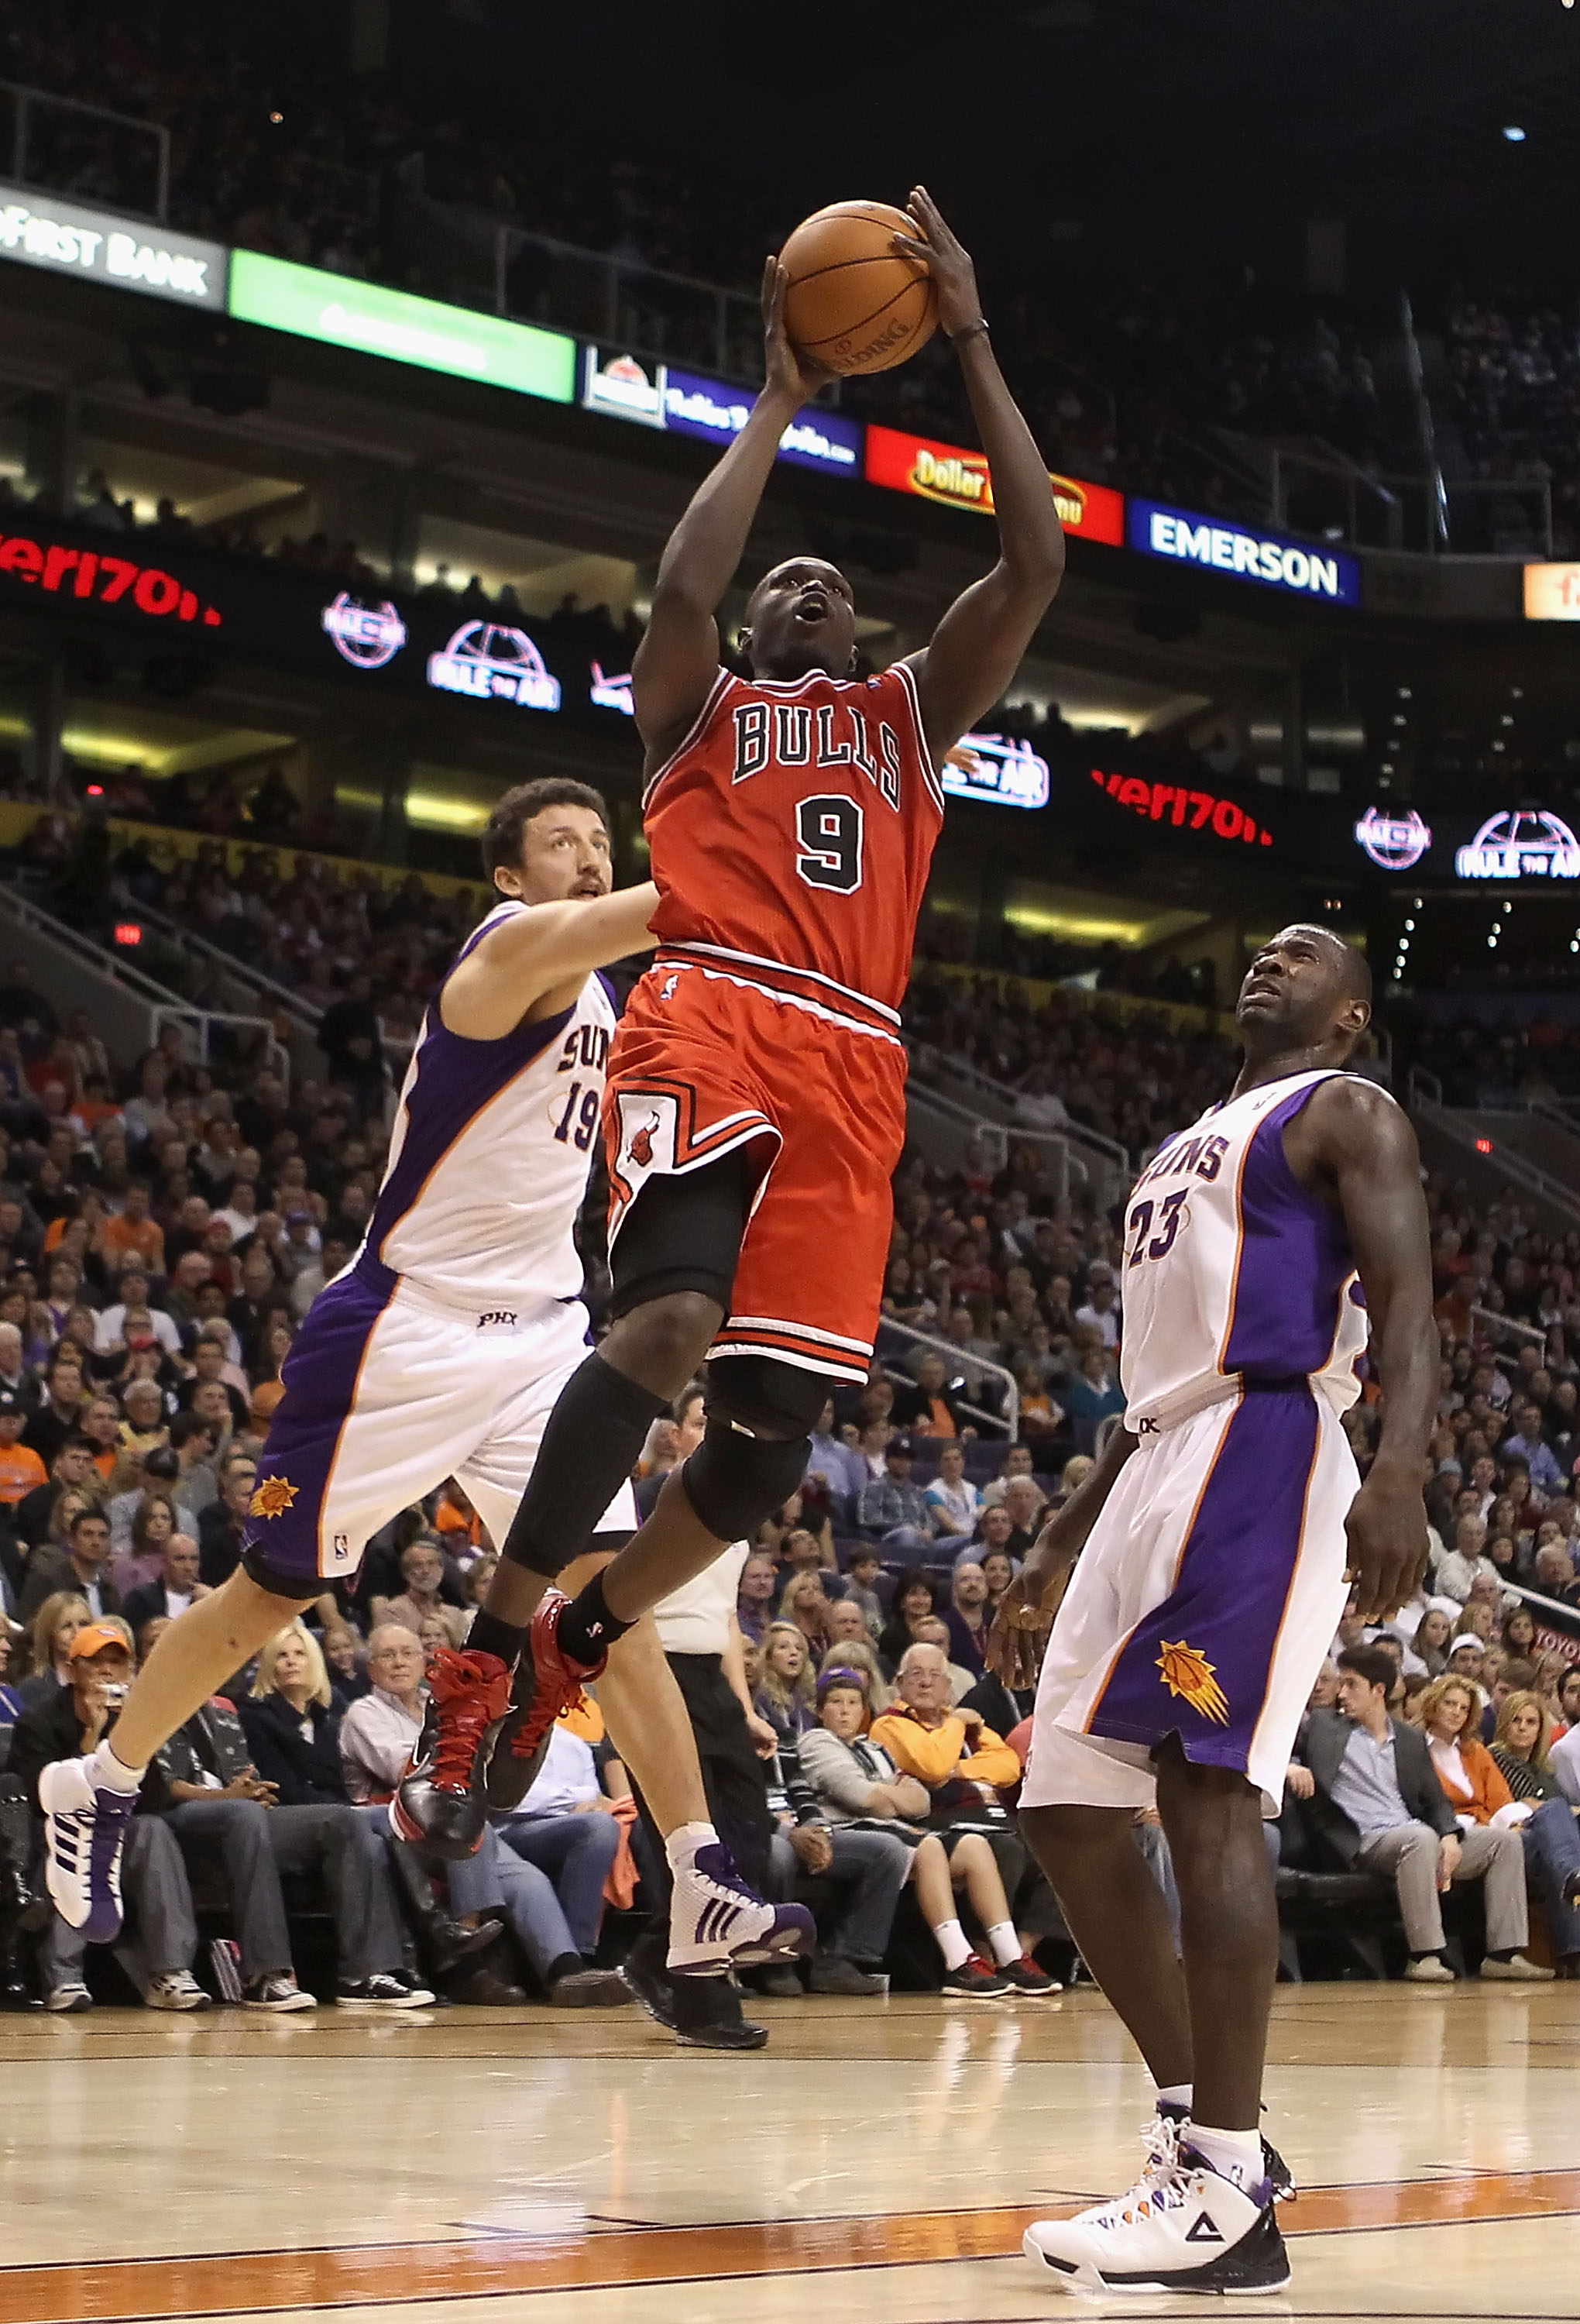 PHOENIX - NOVEMBER 24:  Luol Deng #9 of the Chicago Bulls puts up a shot during the NBA game against the Phoenix Suns at US Airways Center on November 24, 2010 in Phoenix, Arizona. The Bulls defeated the Suns 123-115 in double overtime.  NOTE TO USER: Use